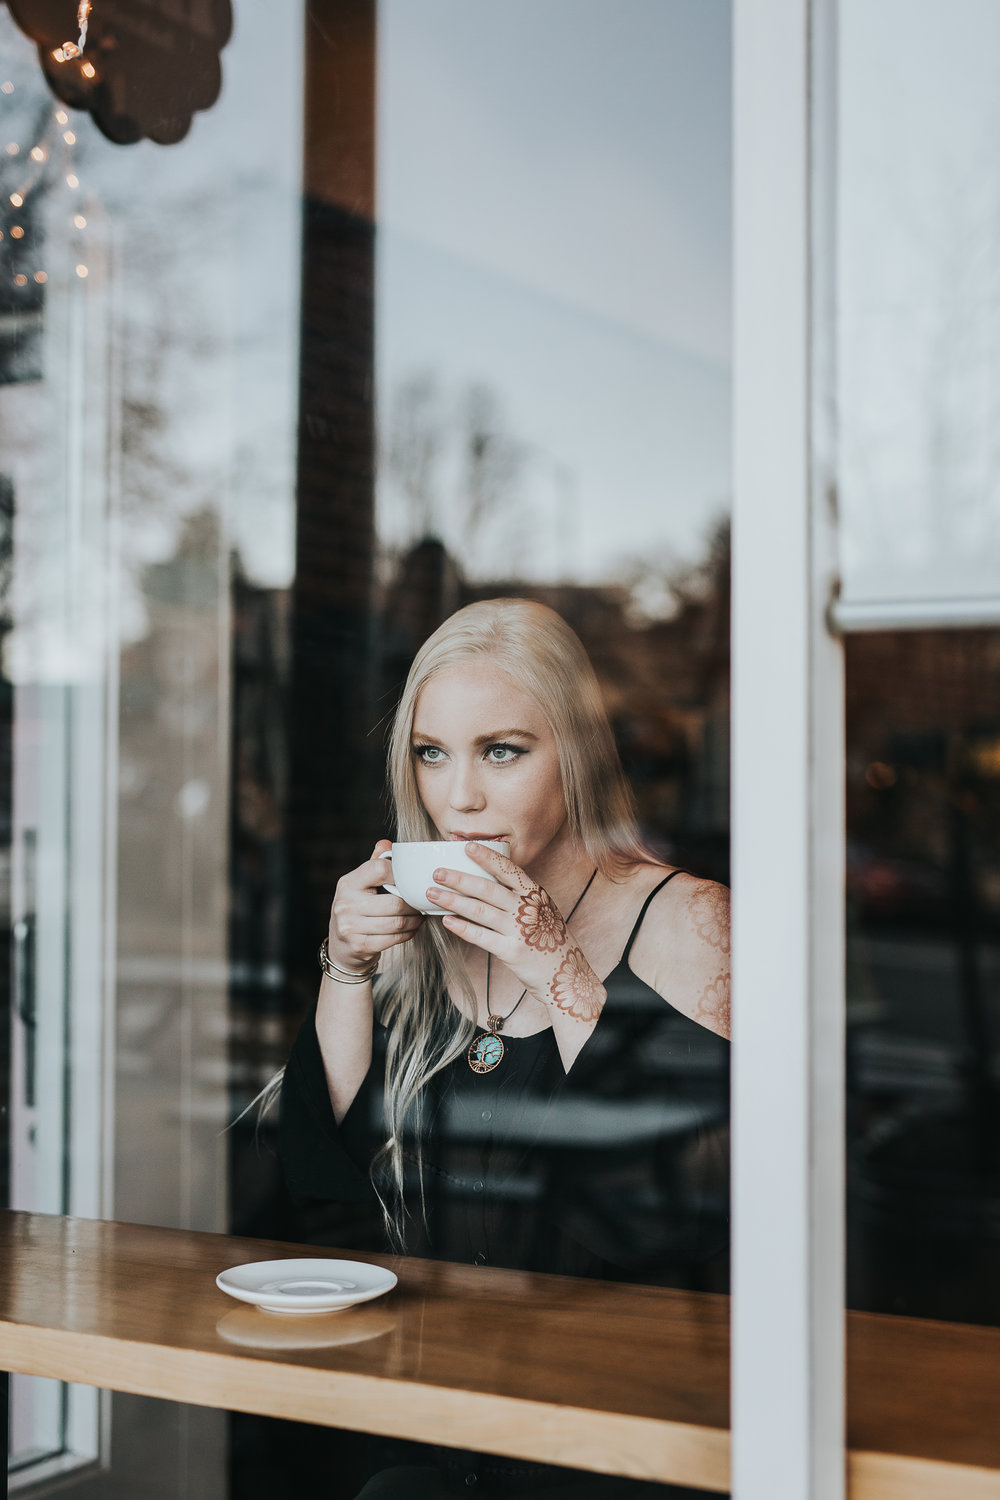 Senior drinking coffee through window of coffee shop